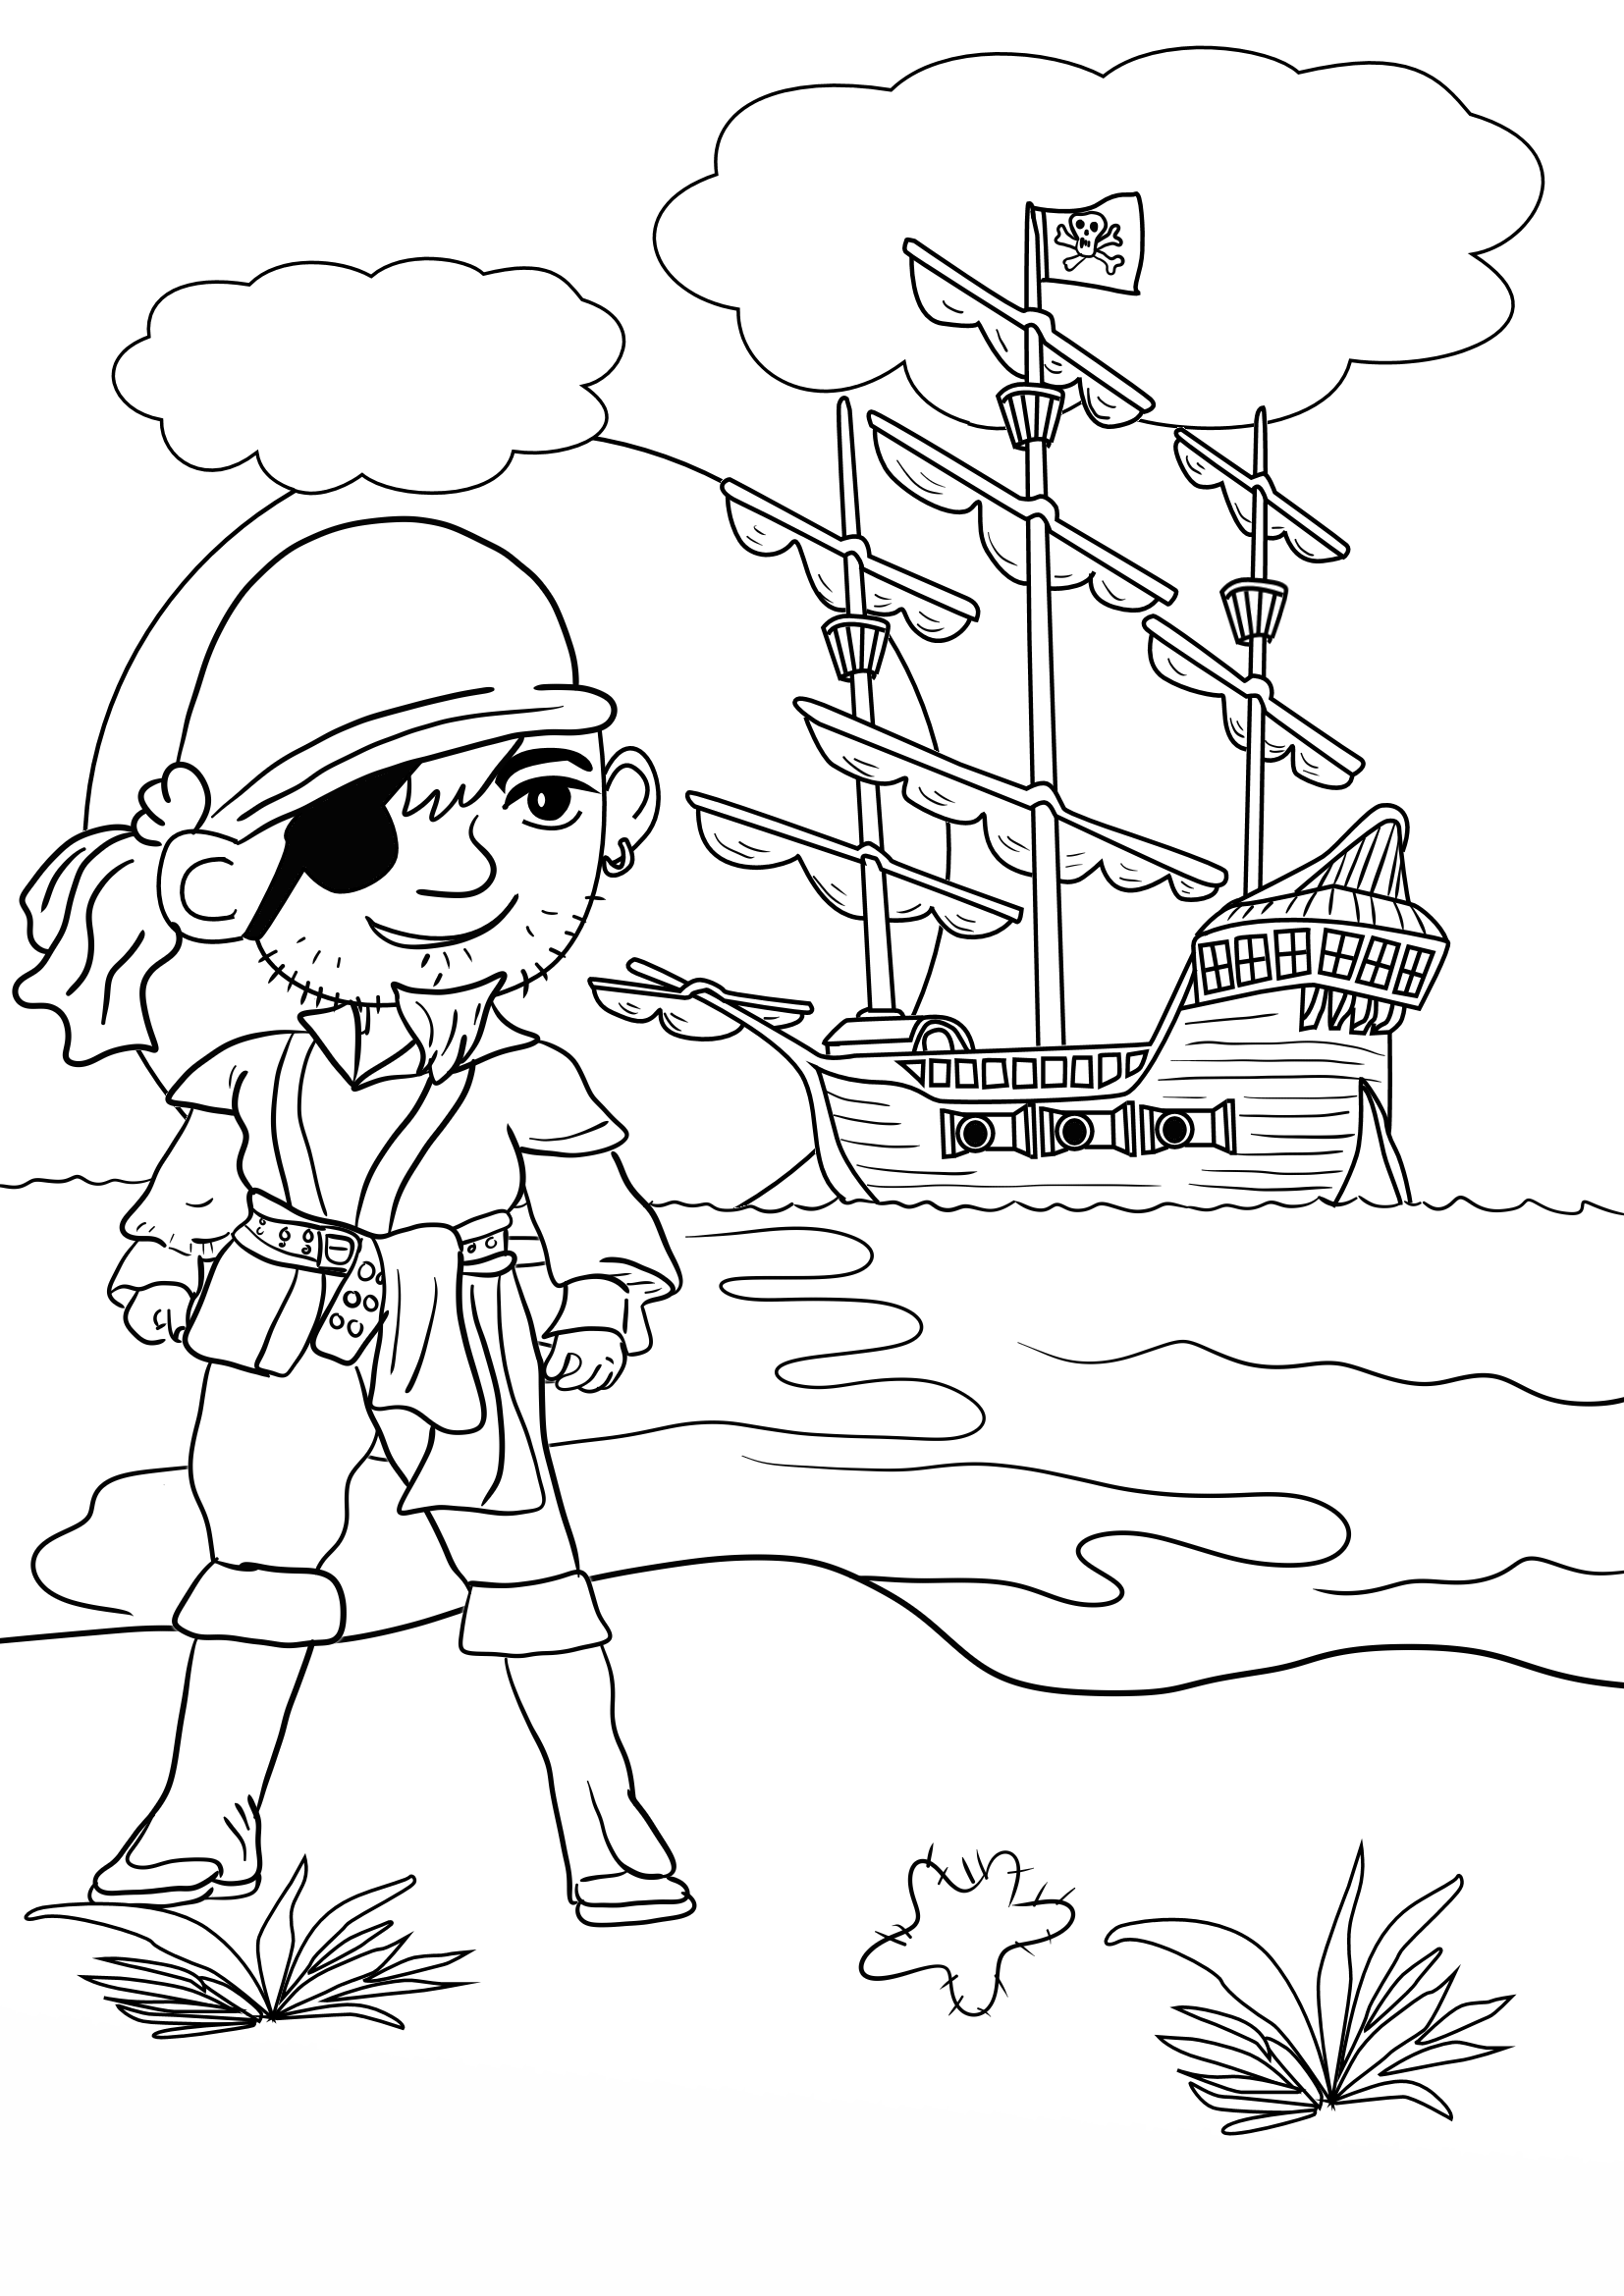 pirate images to color pirates for children pirates kids coloring pages to color images pirate